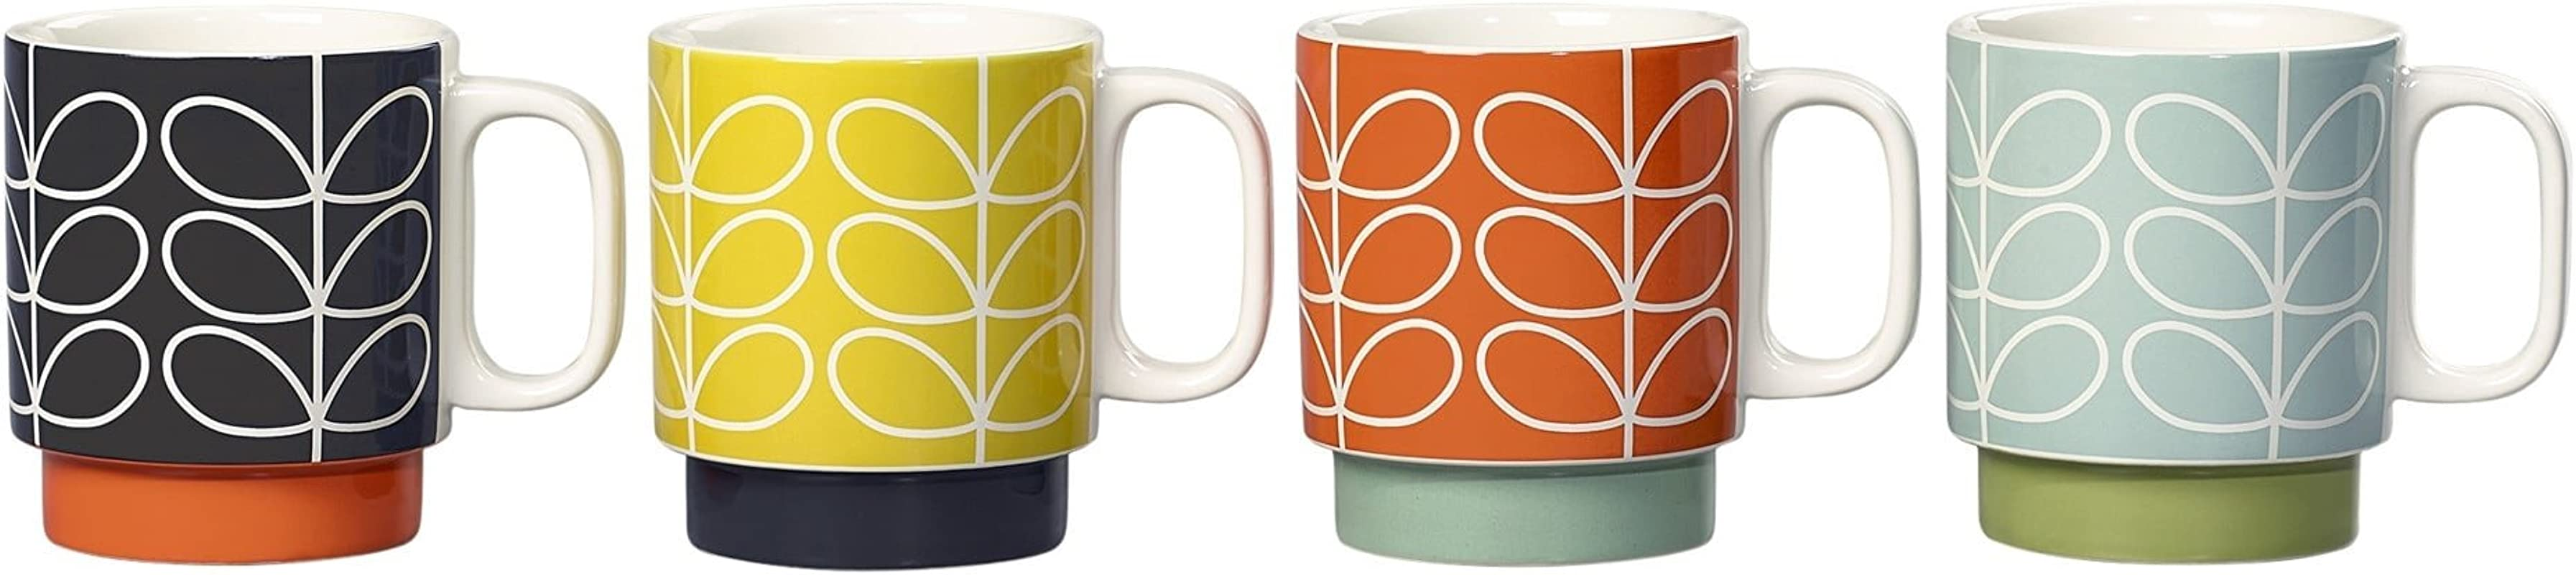 Orla Kiely 70 S Retro Look Linear Stem Print Ceramic Stacking Mugs Set Of 4